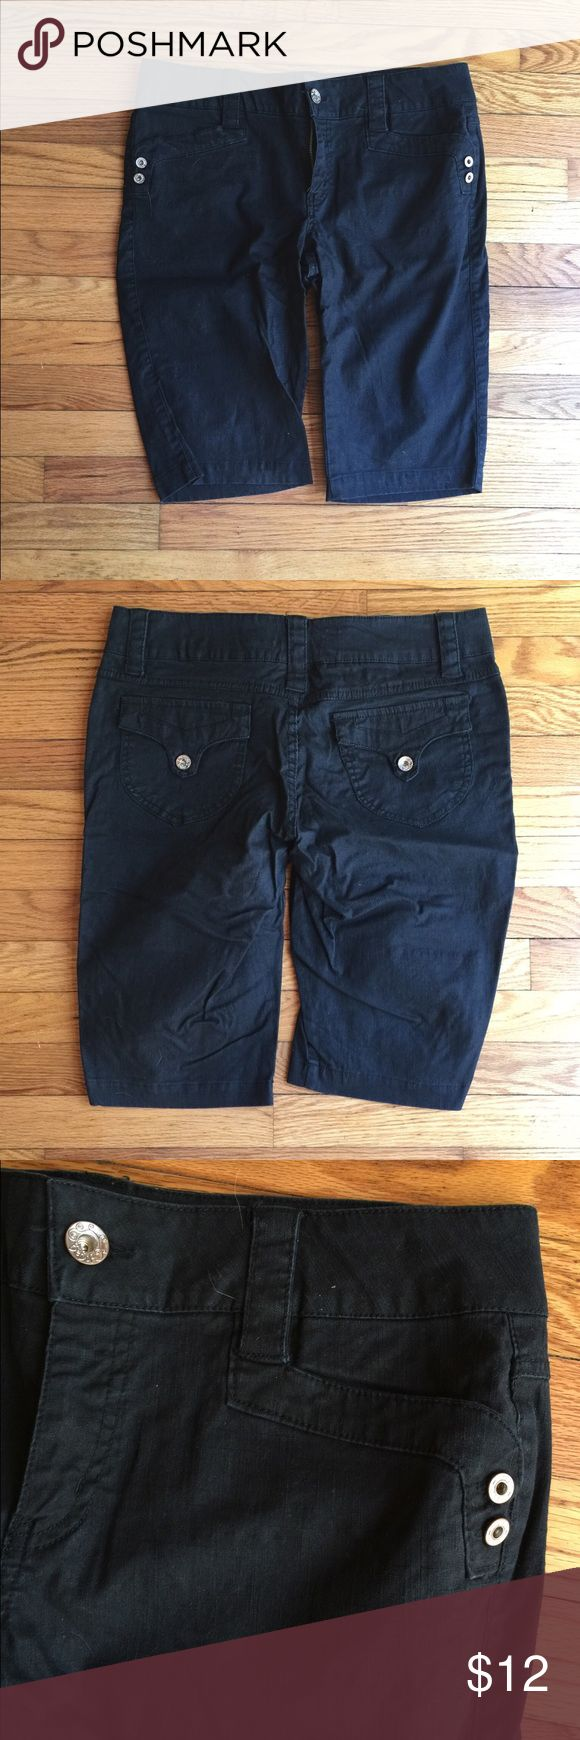 Black Bermuda Shorts Size 13, black Bermuda shorts. Front and back pockets, zipper closure, buttons and belt loops. Please request measurements if you need them!  No swaps, but I will bundle! Find more in your size with #brokebrideL   #bebop #bermudashorts #shorts #size13 #summer BeBop Shorts Bermudas